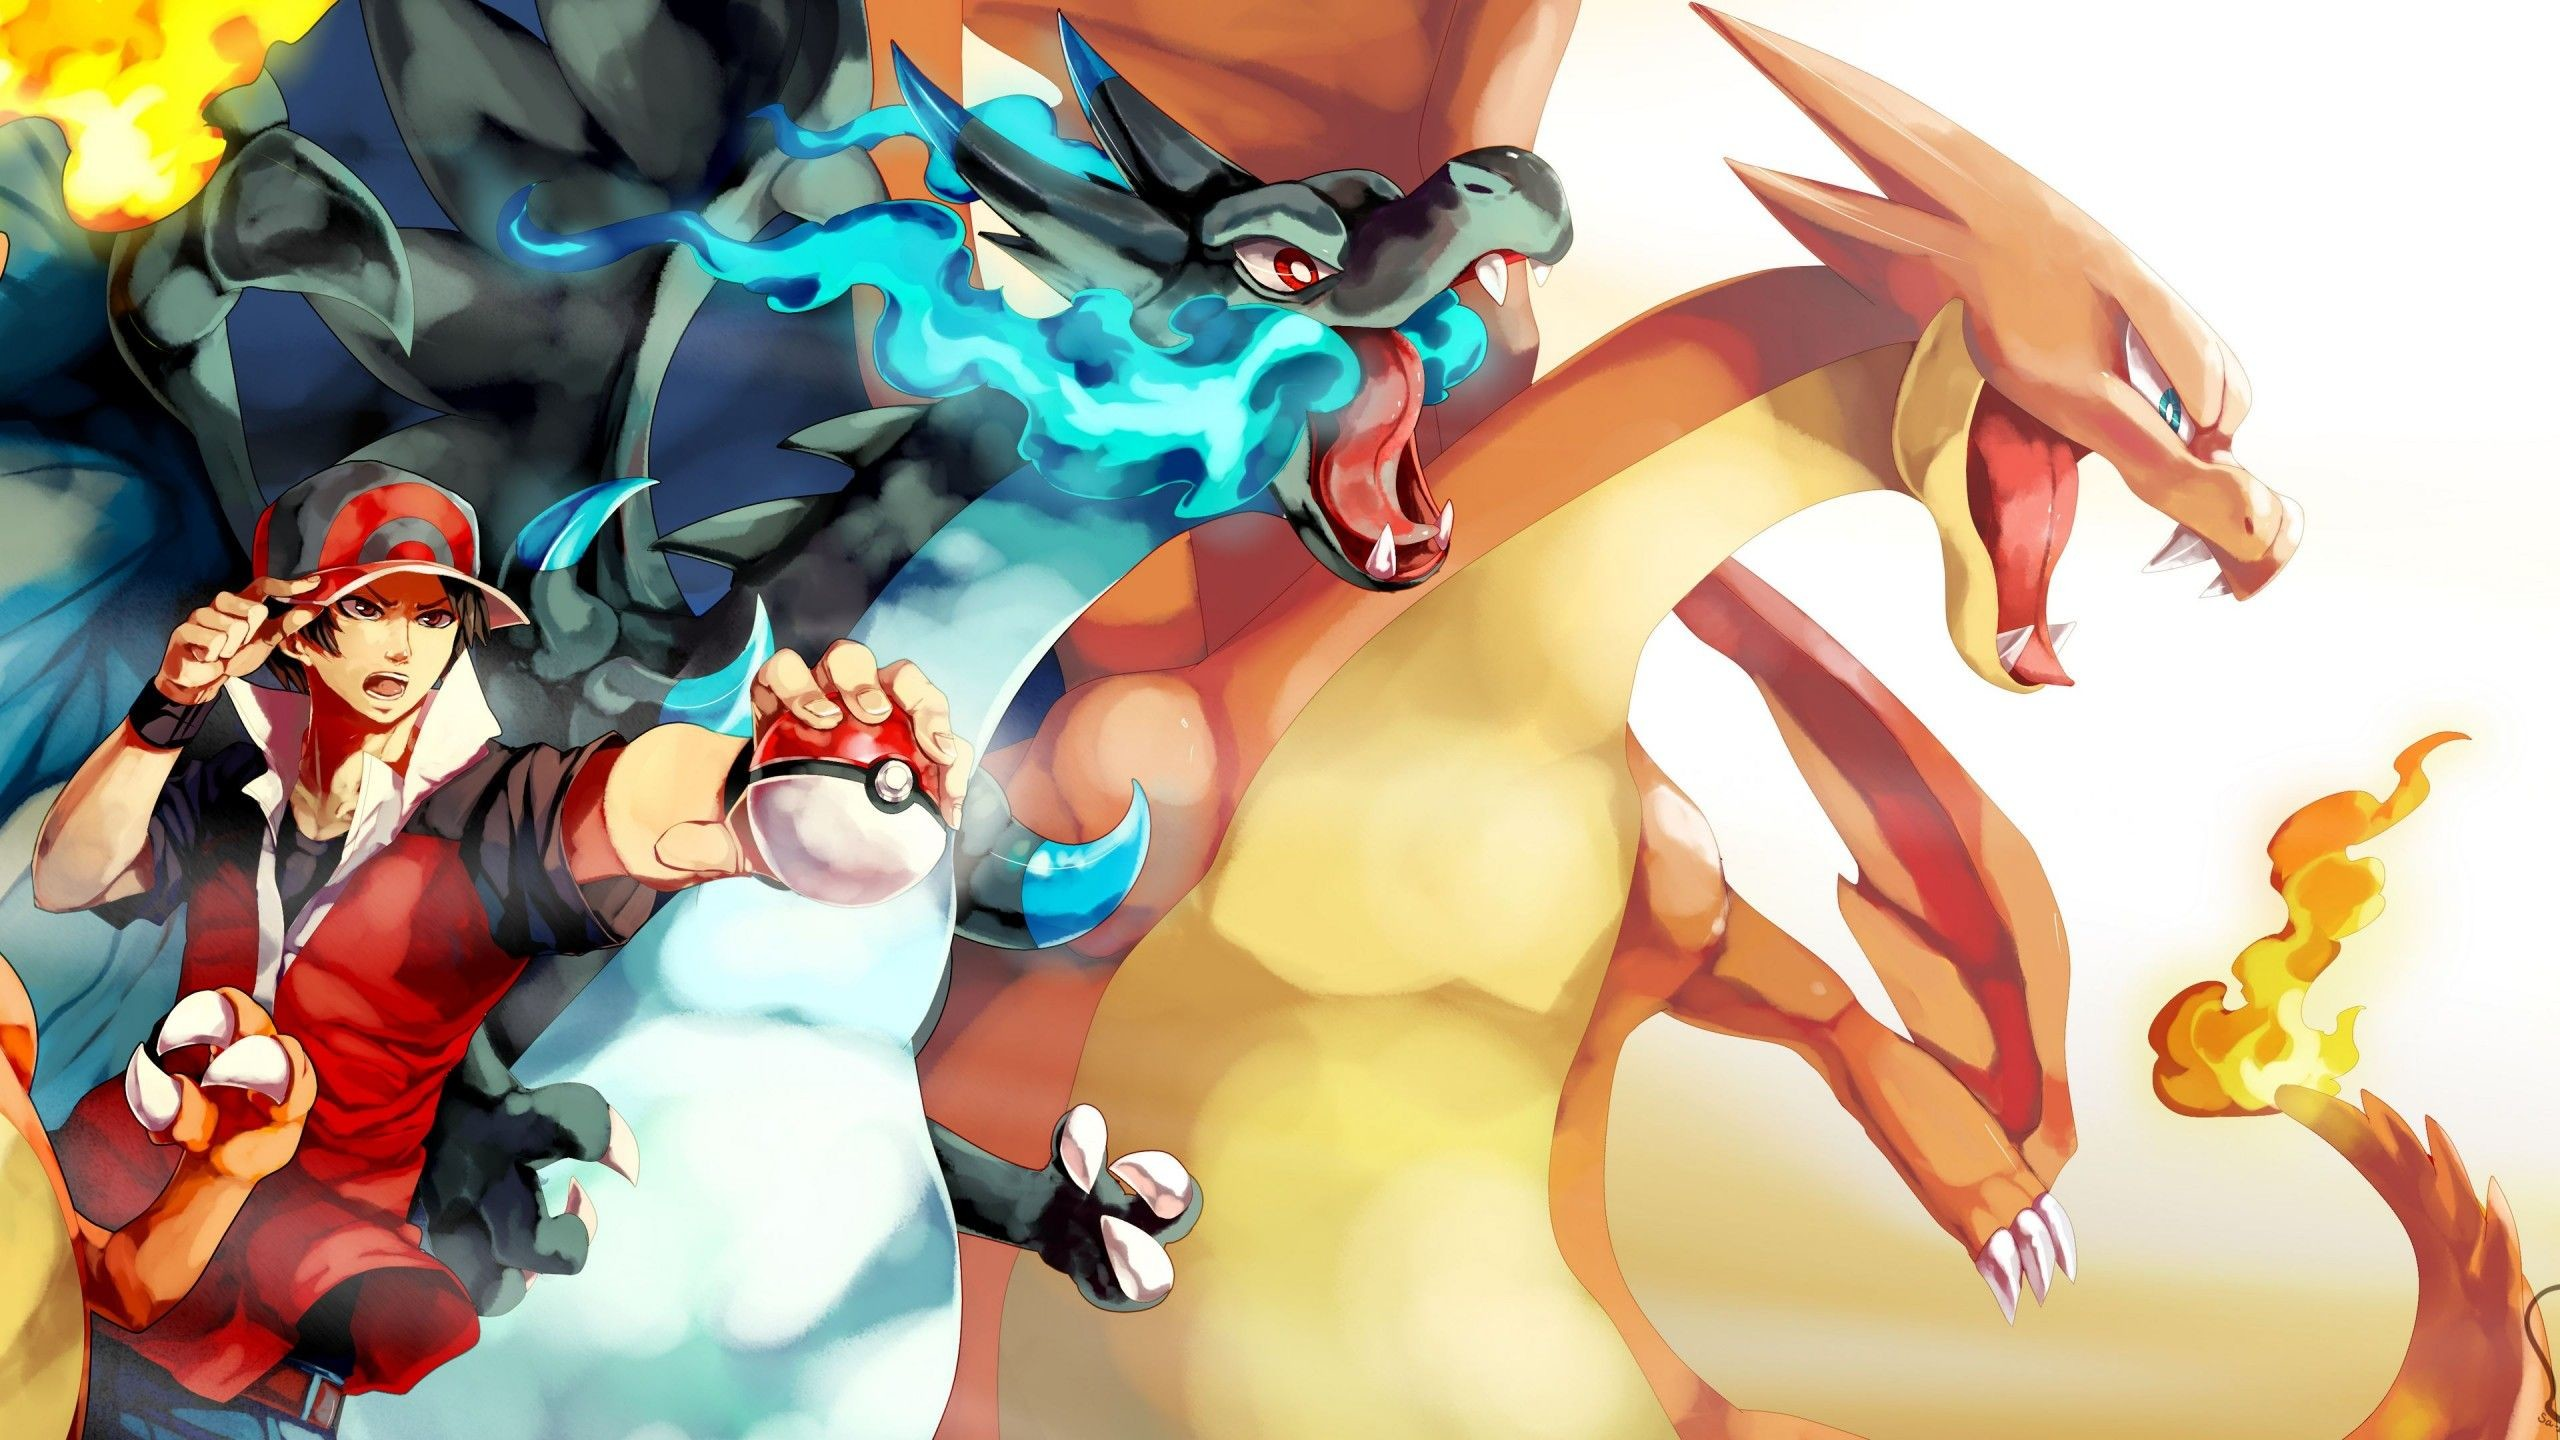 Res: 2560x1440, Red and Charizard, Pokemon  - Wallpaper - ImgPrix